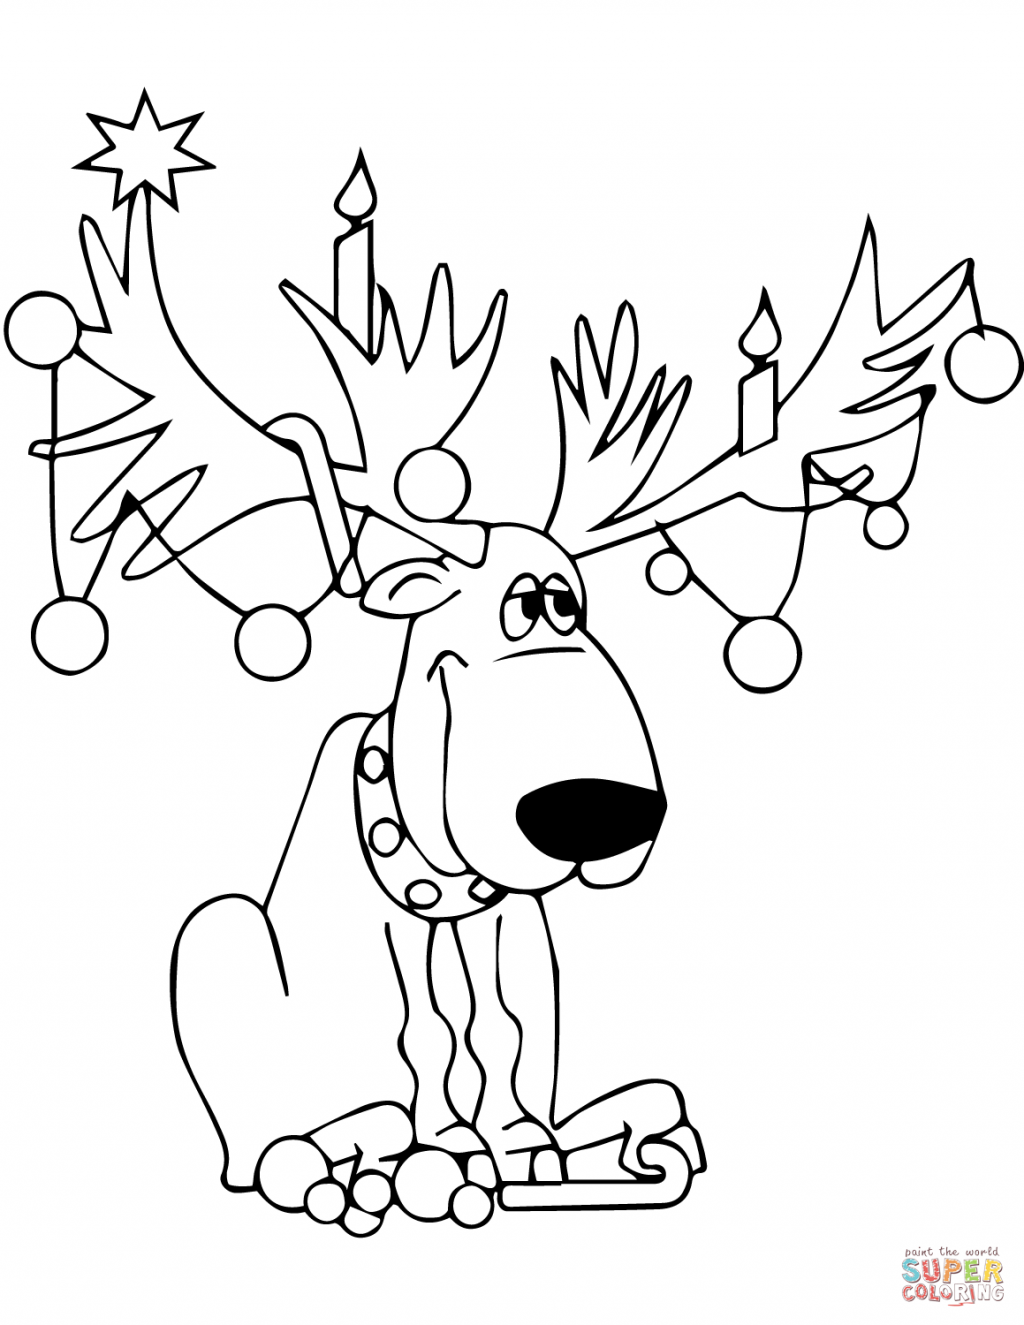 Christmas Coloring Pages Lights Deer Coloring Pages Christmas Coloring Sheets Christmas Coloring Pages